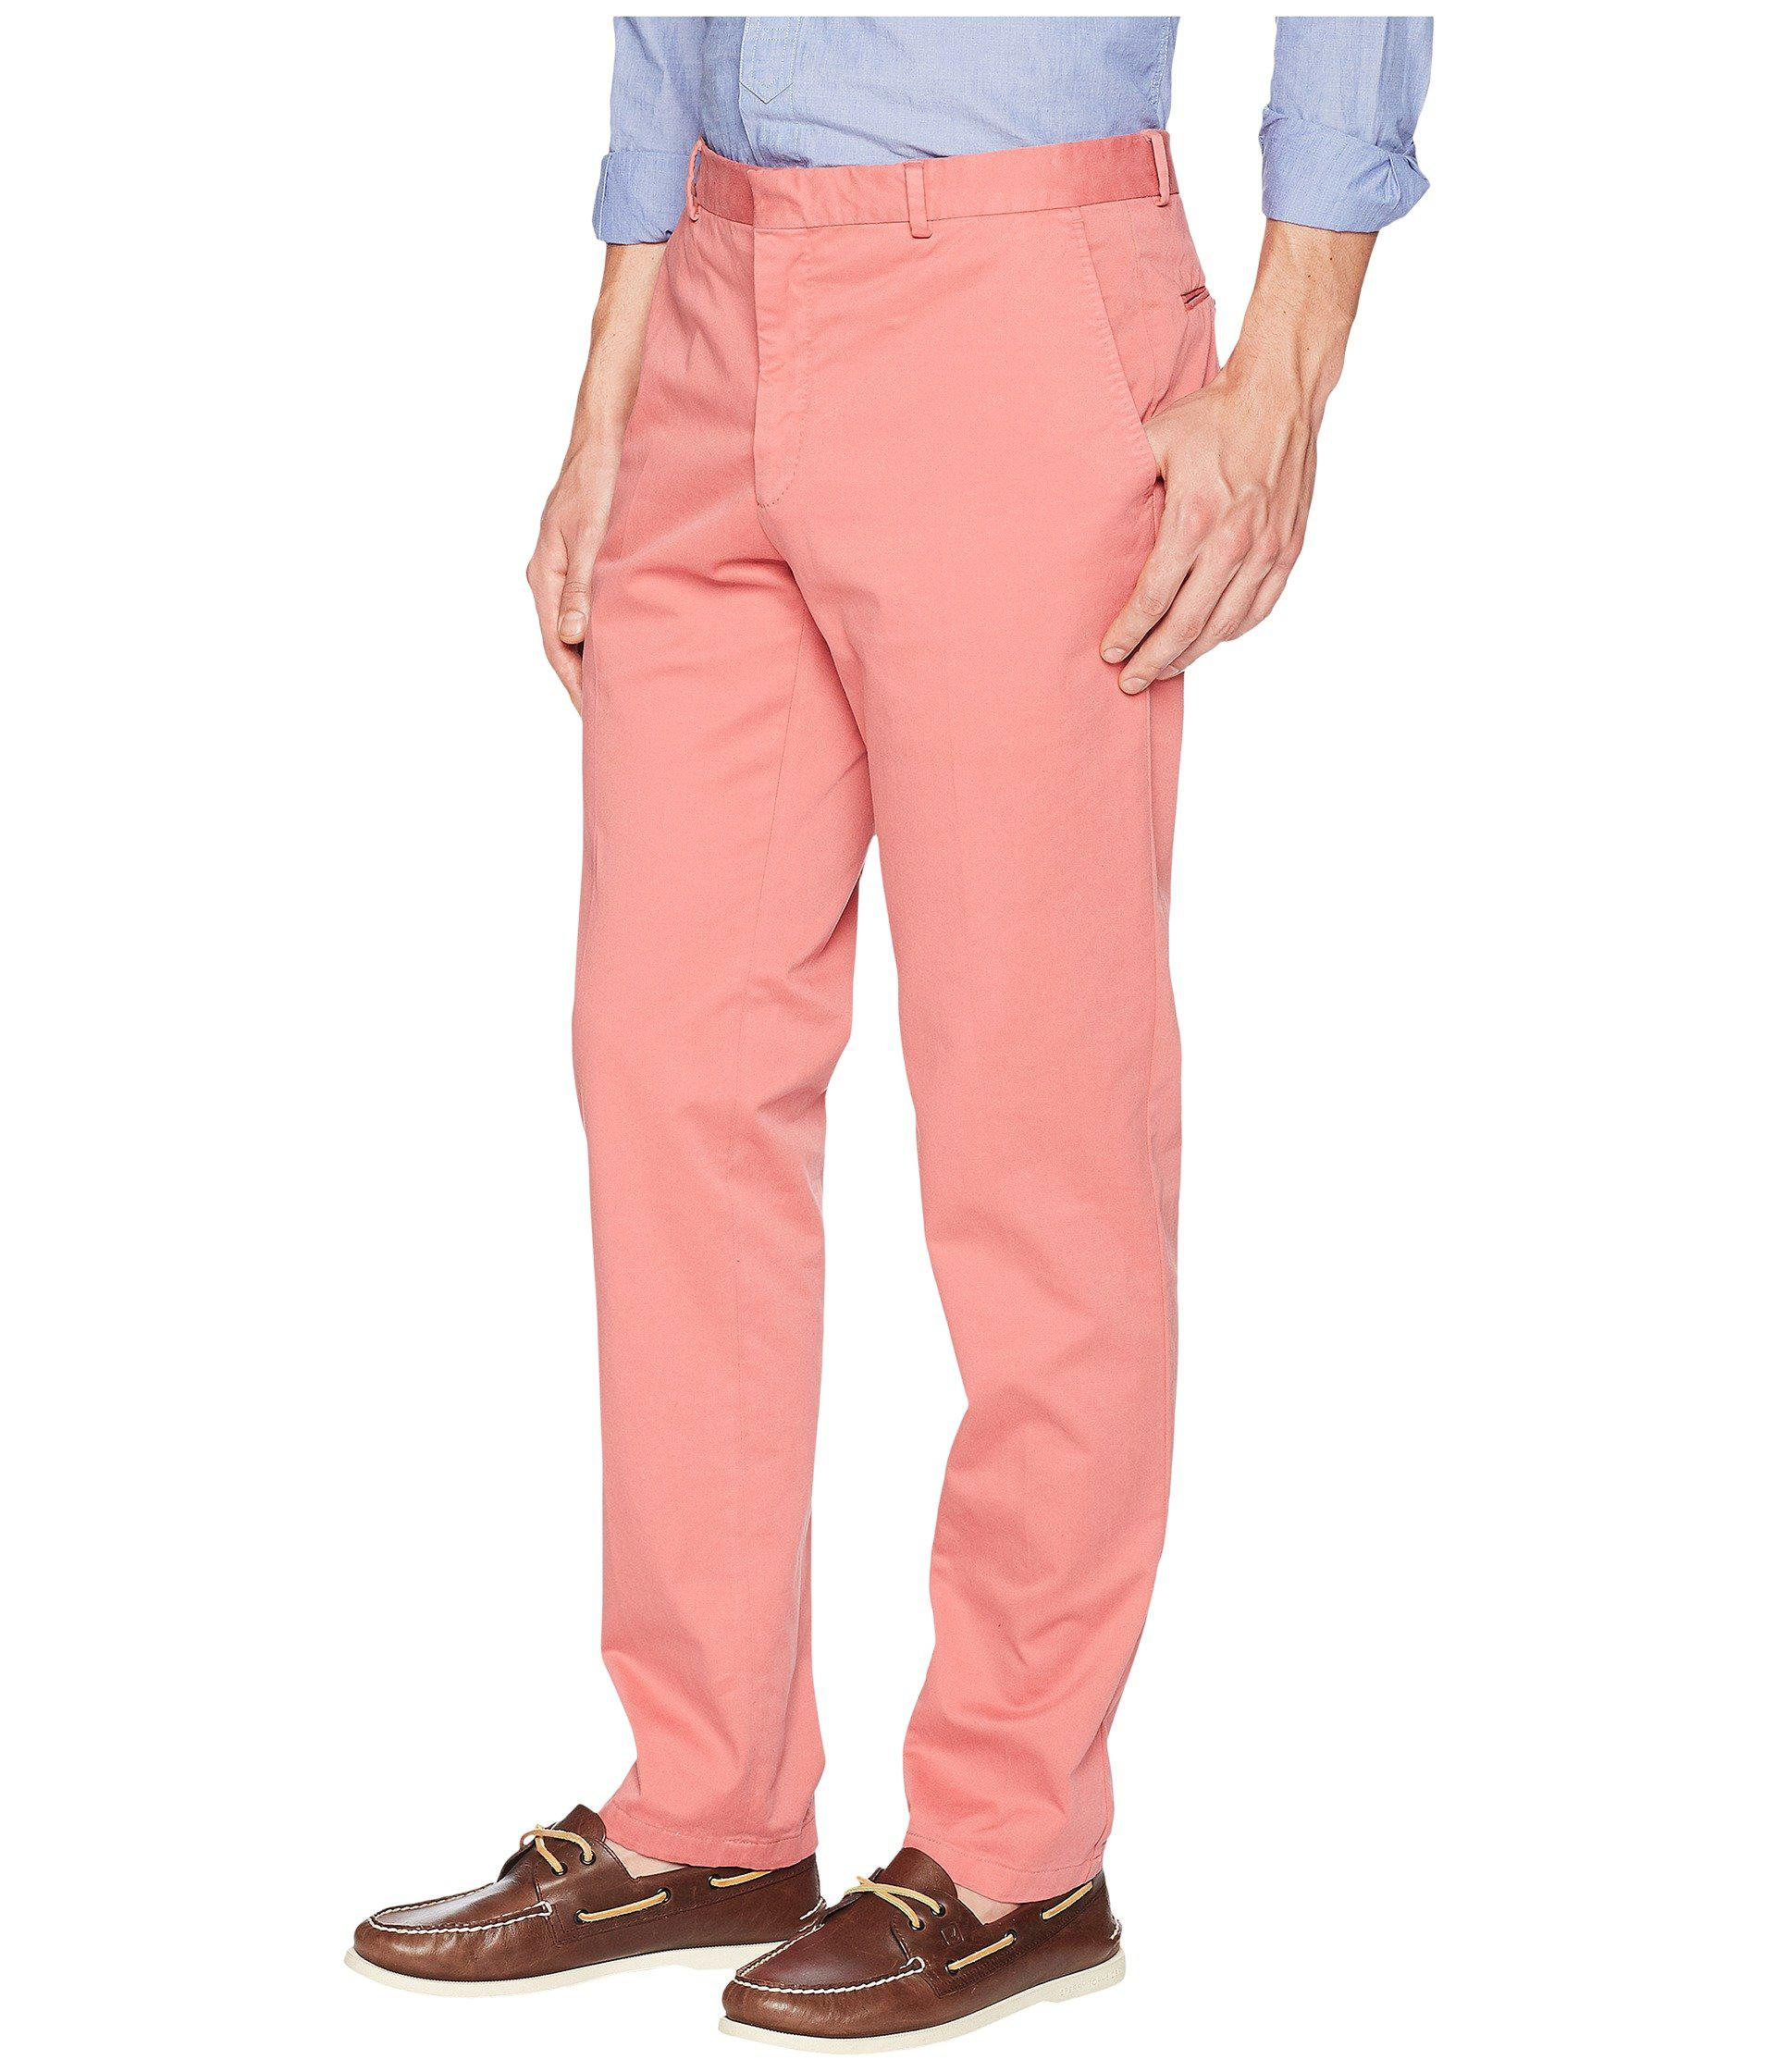 962c24aba8e0 Lyst - Polo Ralph Lauren Garment Dyed Cotton Stretch Trousers in Red for Men  - Save 54%